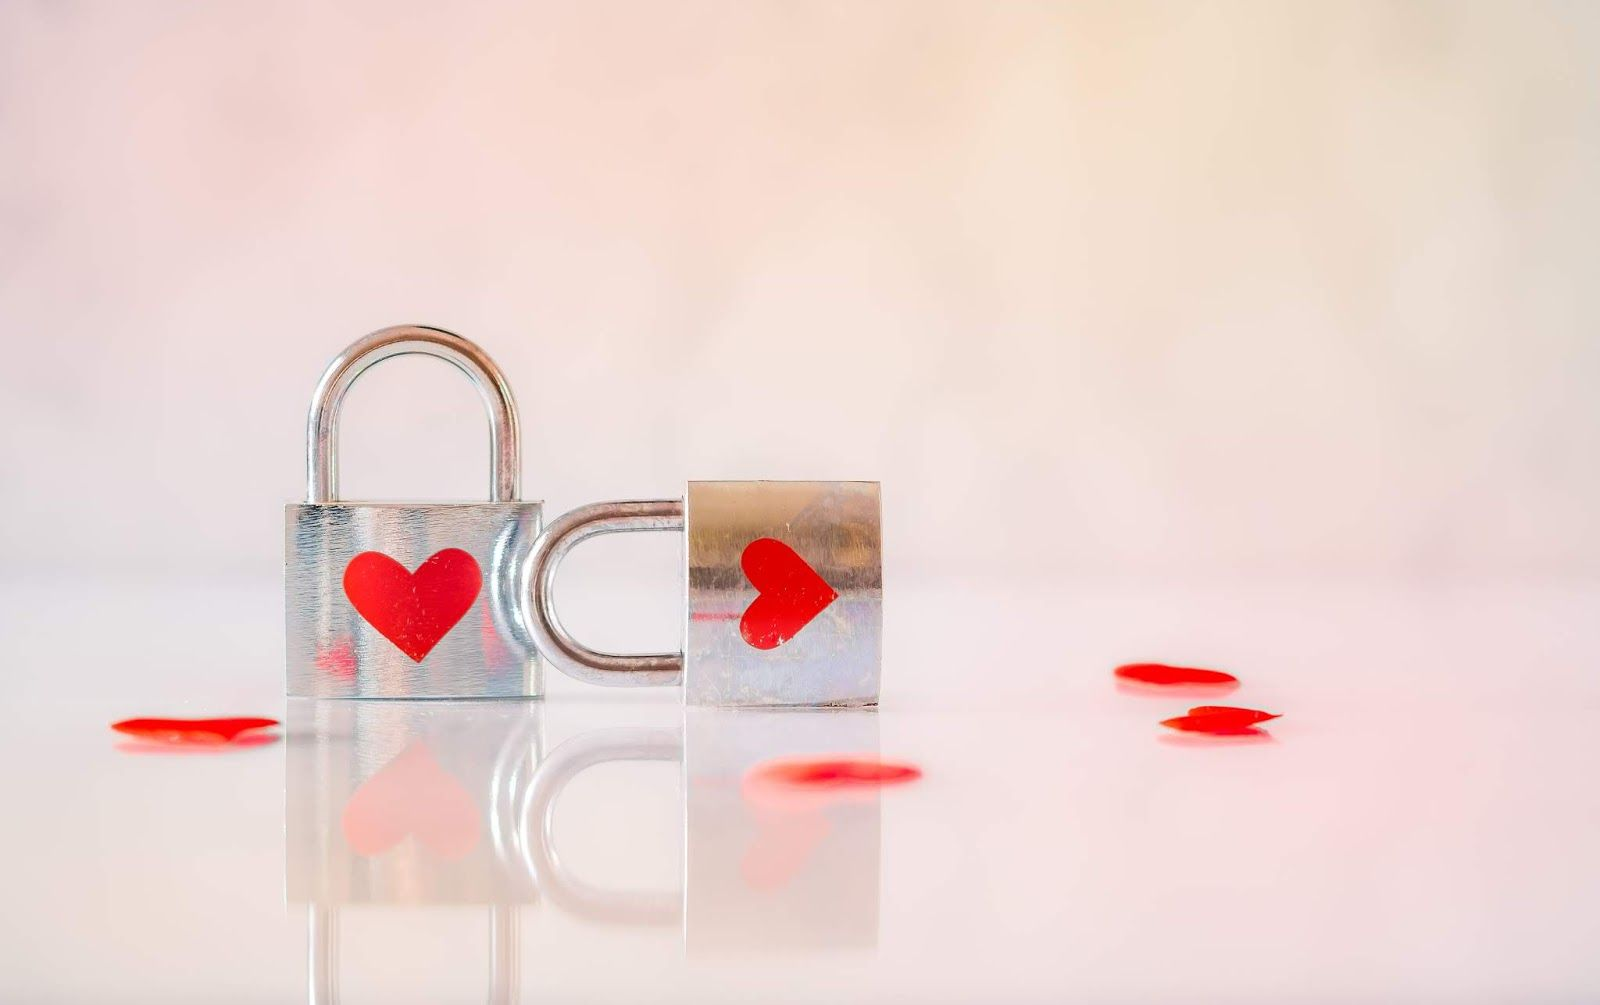 Love Locks Whatsapp Dp Love Images Cute Love Heart Pictures Couples Counseling